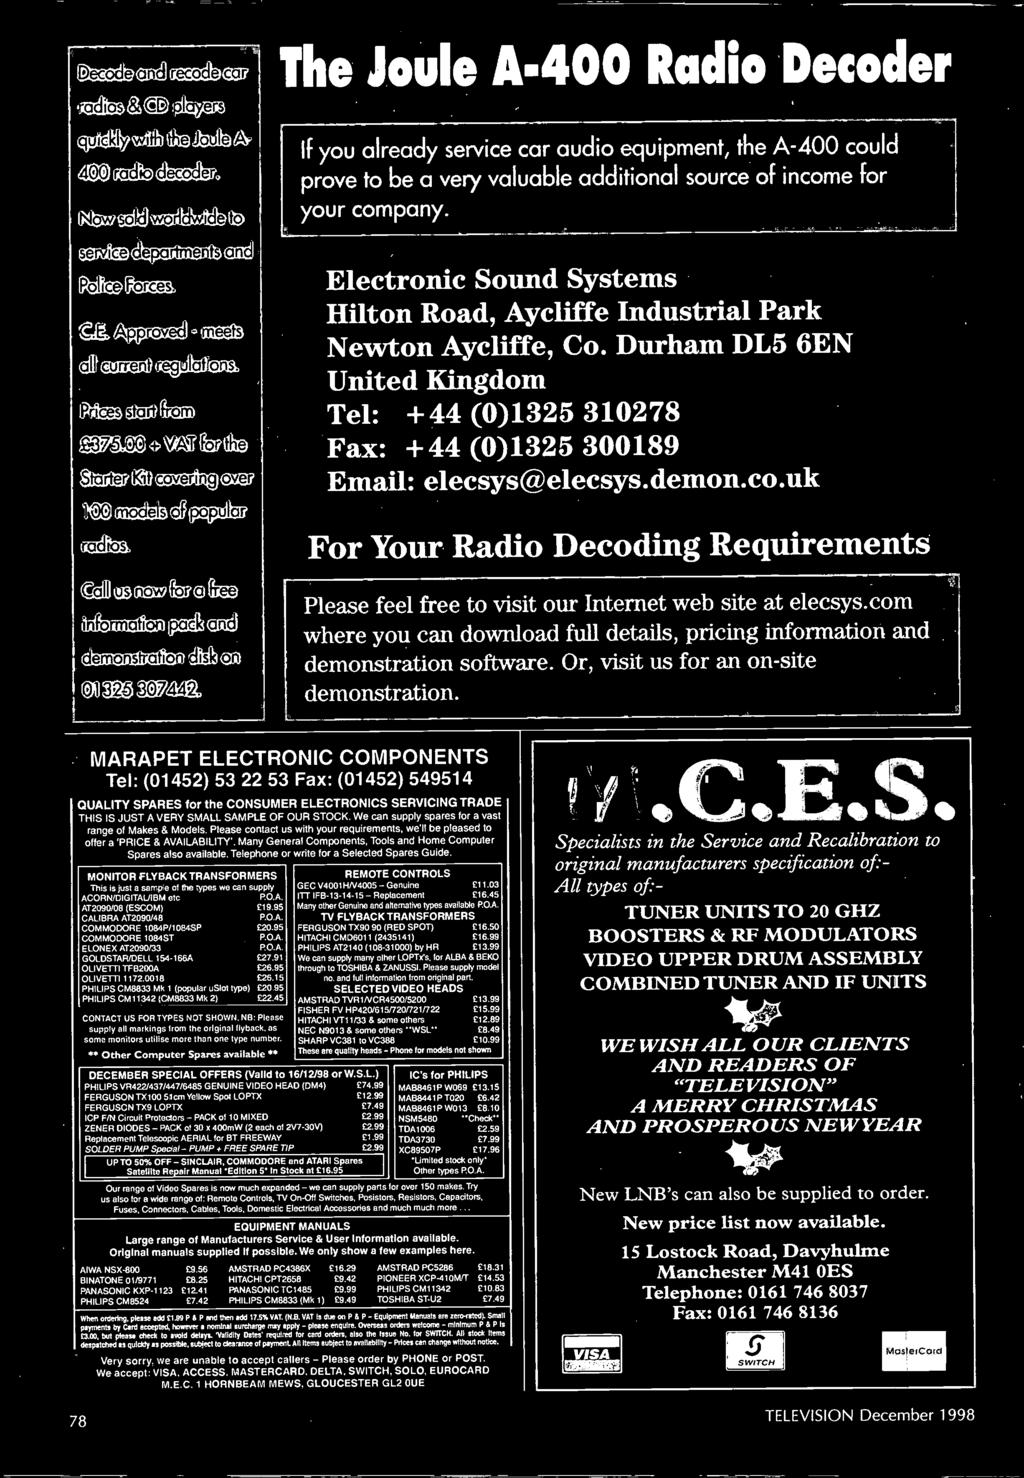 The Leading Uk Consumer Electronics Technology Magazine 111eleip S Hobby Circuits Cricket Voice With Buzzer Using Lm324 Marapet Electronic Components Tel 01452 53 22 Fax